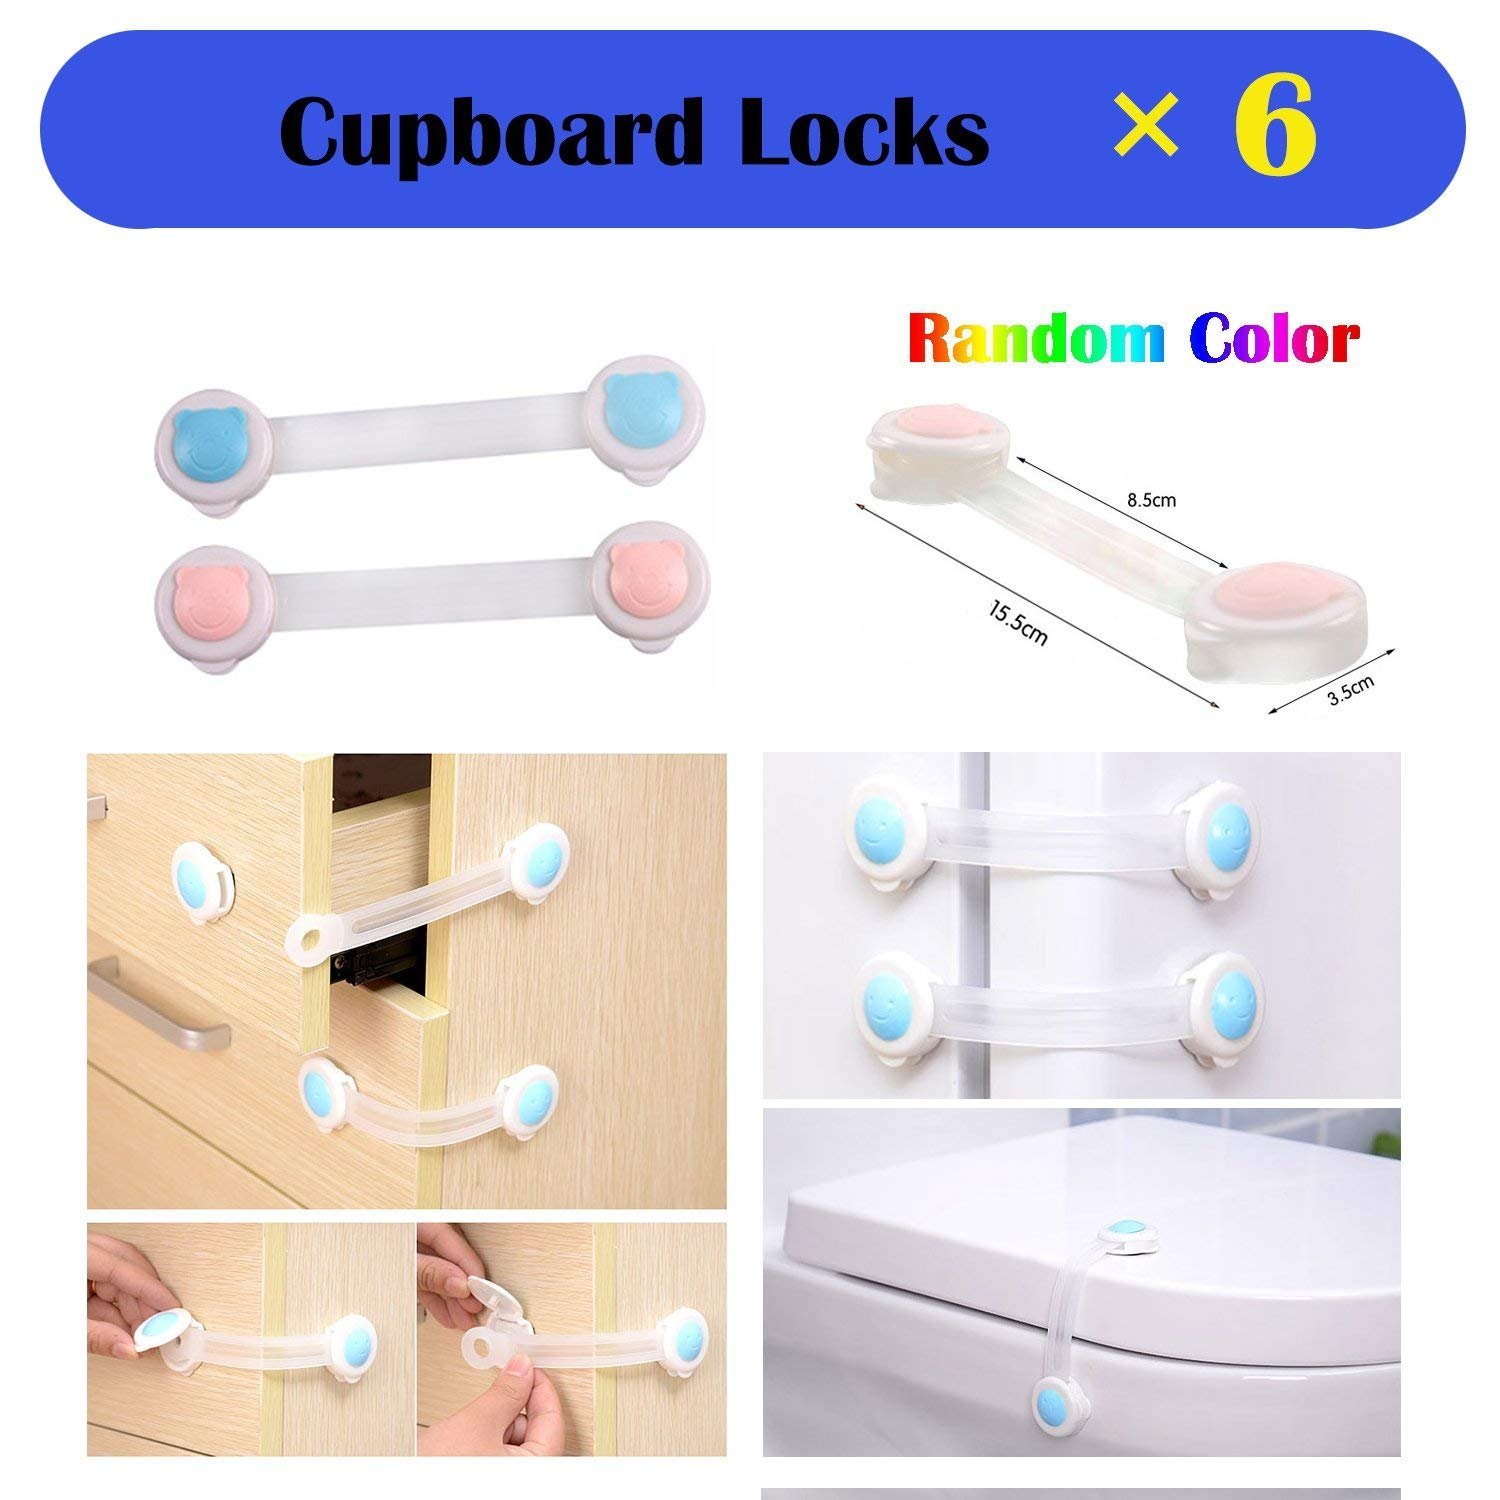 Baby Safety Proofing Kits (56 Pack) 20Pcs Outlet Covers +6Pcs Child Safety Proofing Cabinet Locks+ 20Pcs Corner Protector Edge Guard+ 6Pcs Children Cupboard Locks + 4Pcs Kids Safety Foam Door Stoppers by HOMER (Image #7)